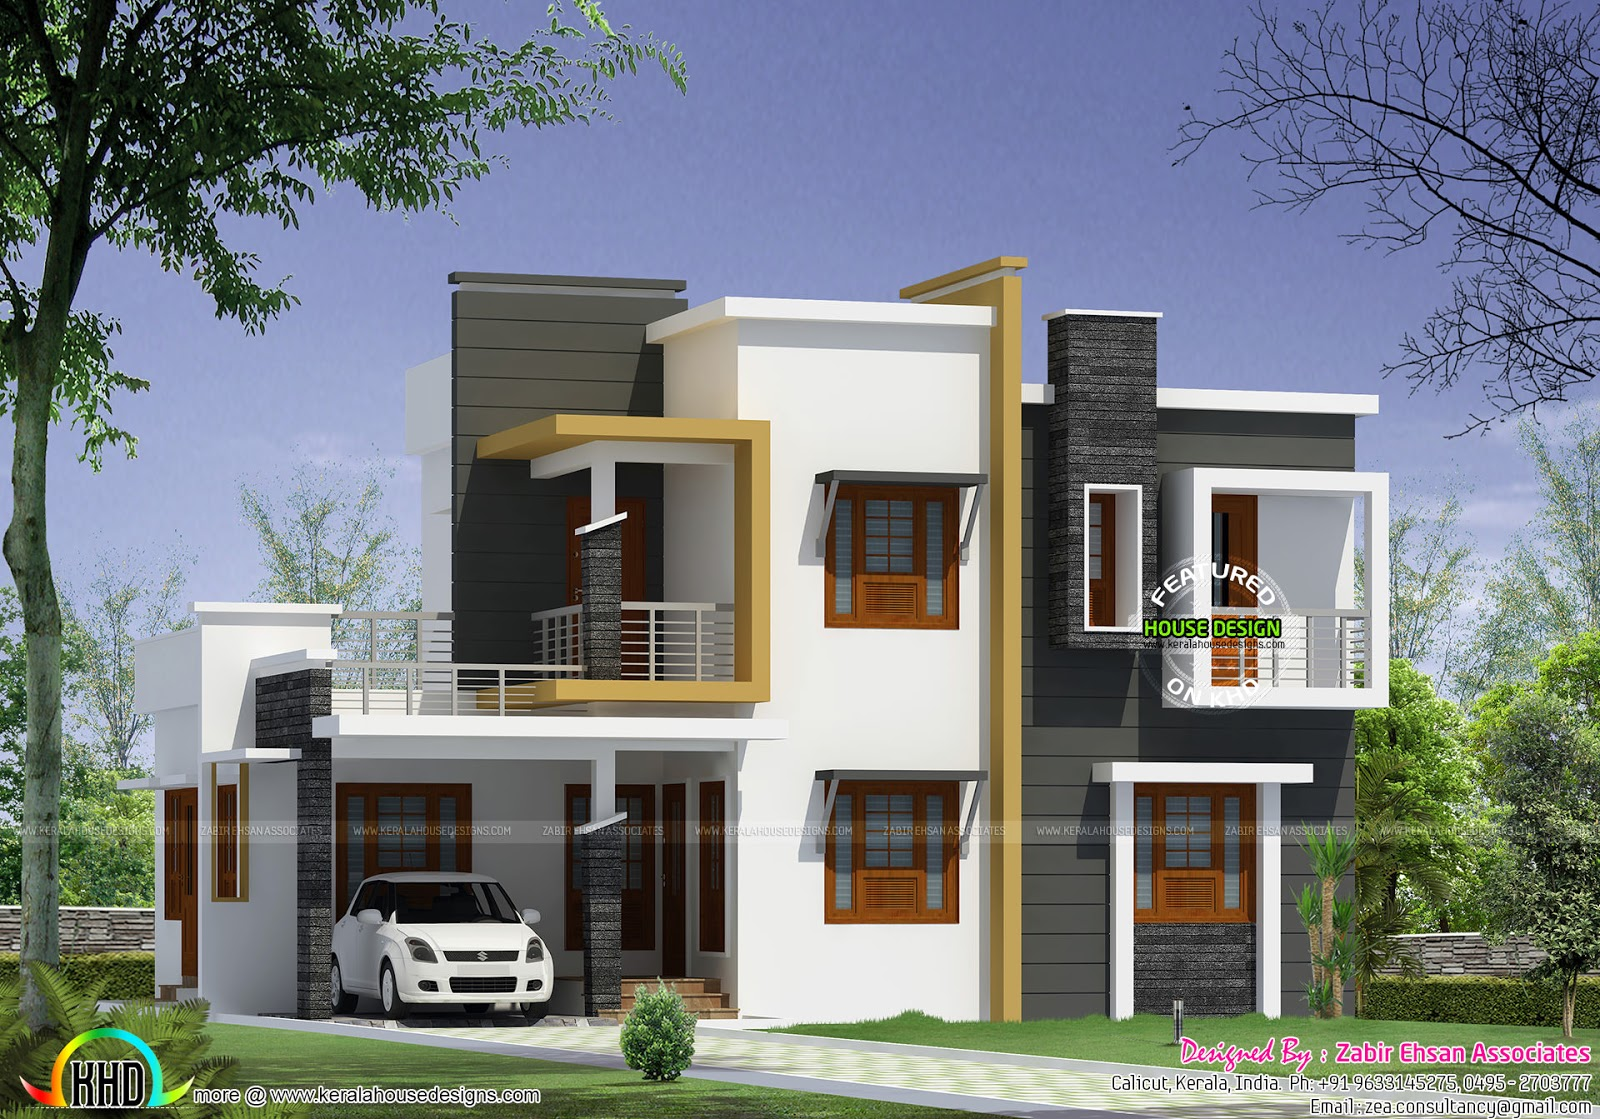 Box type modern house plan kerala home design and floor for Kerala home designs contemporary